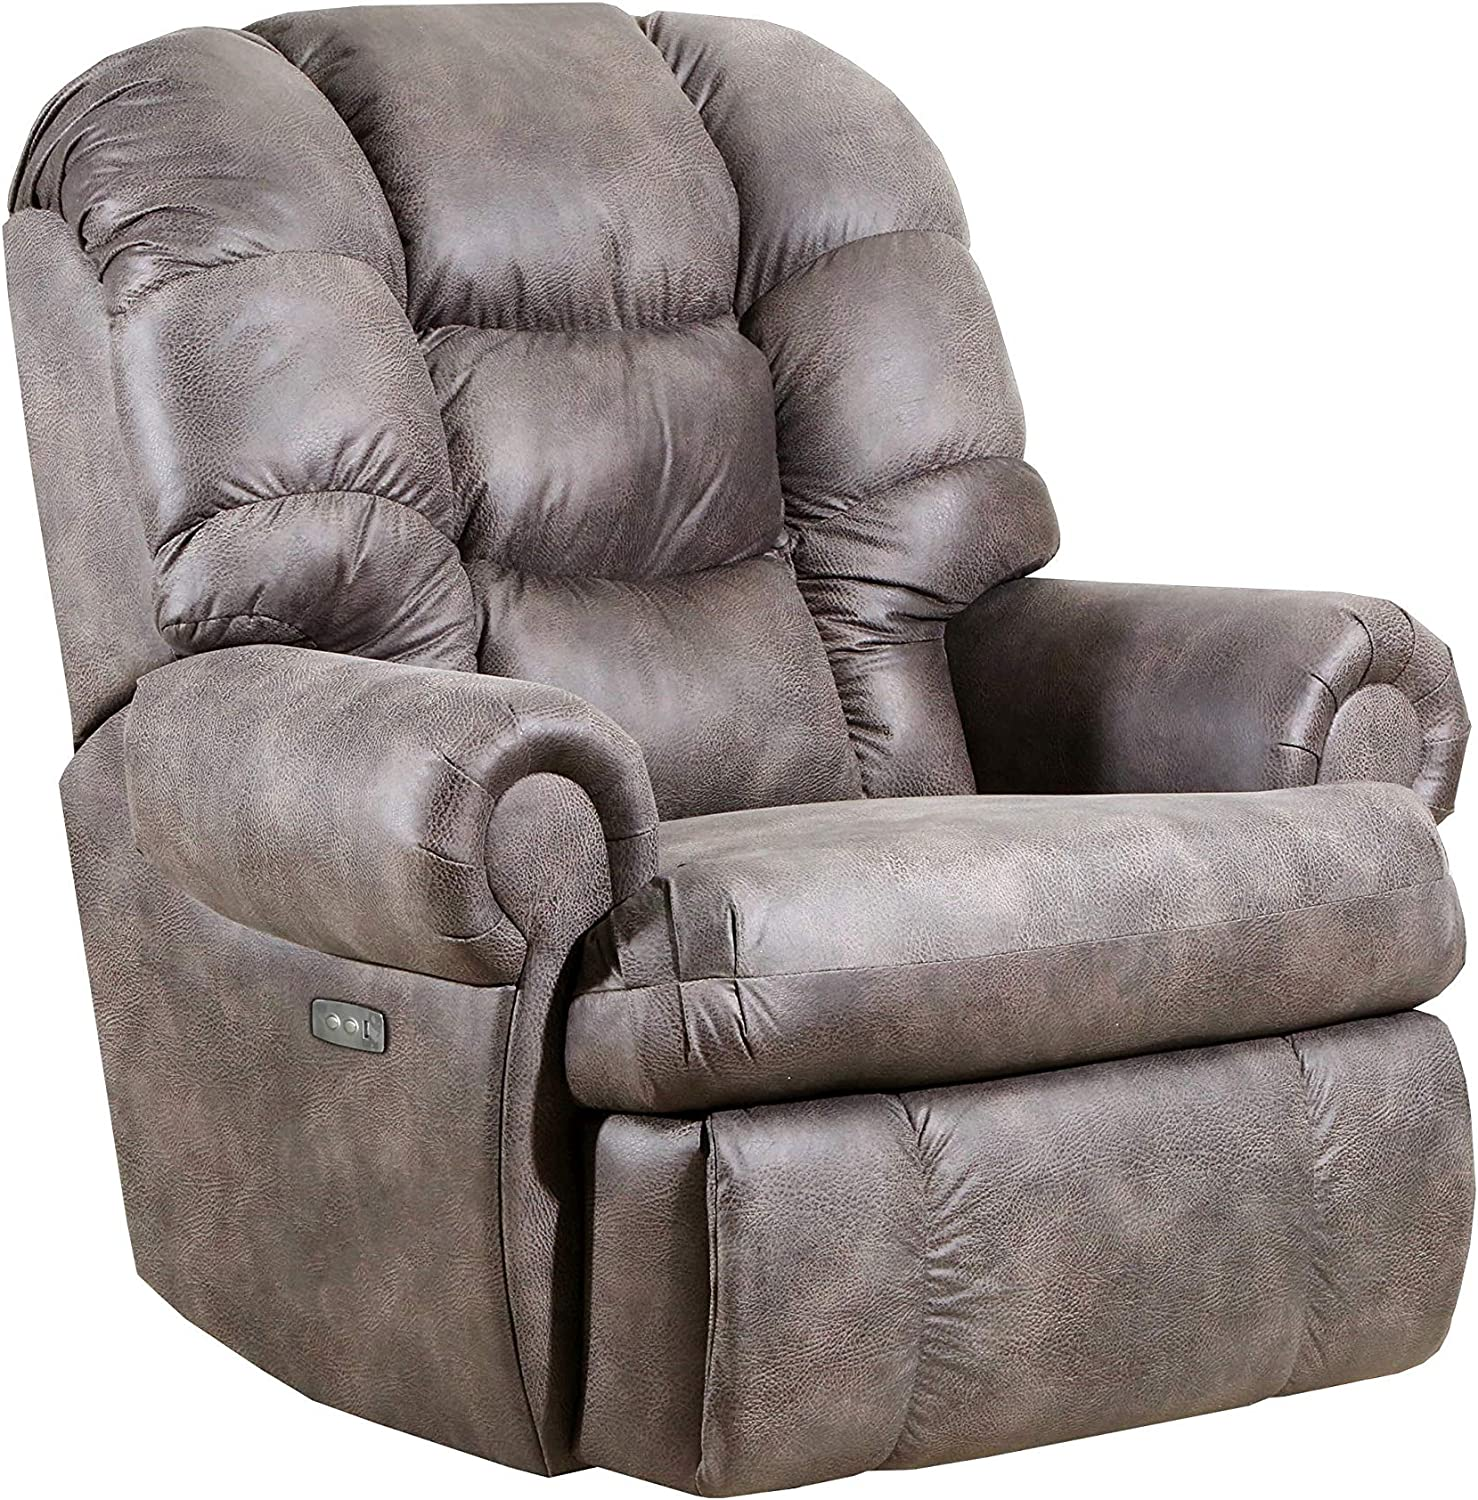 Lane Home Furnishings Power Heat Massage Rocker Recliner